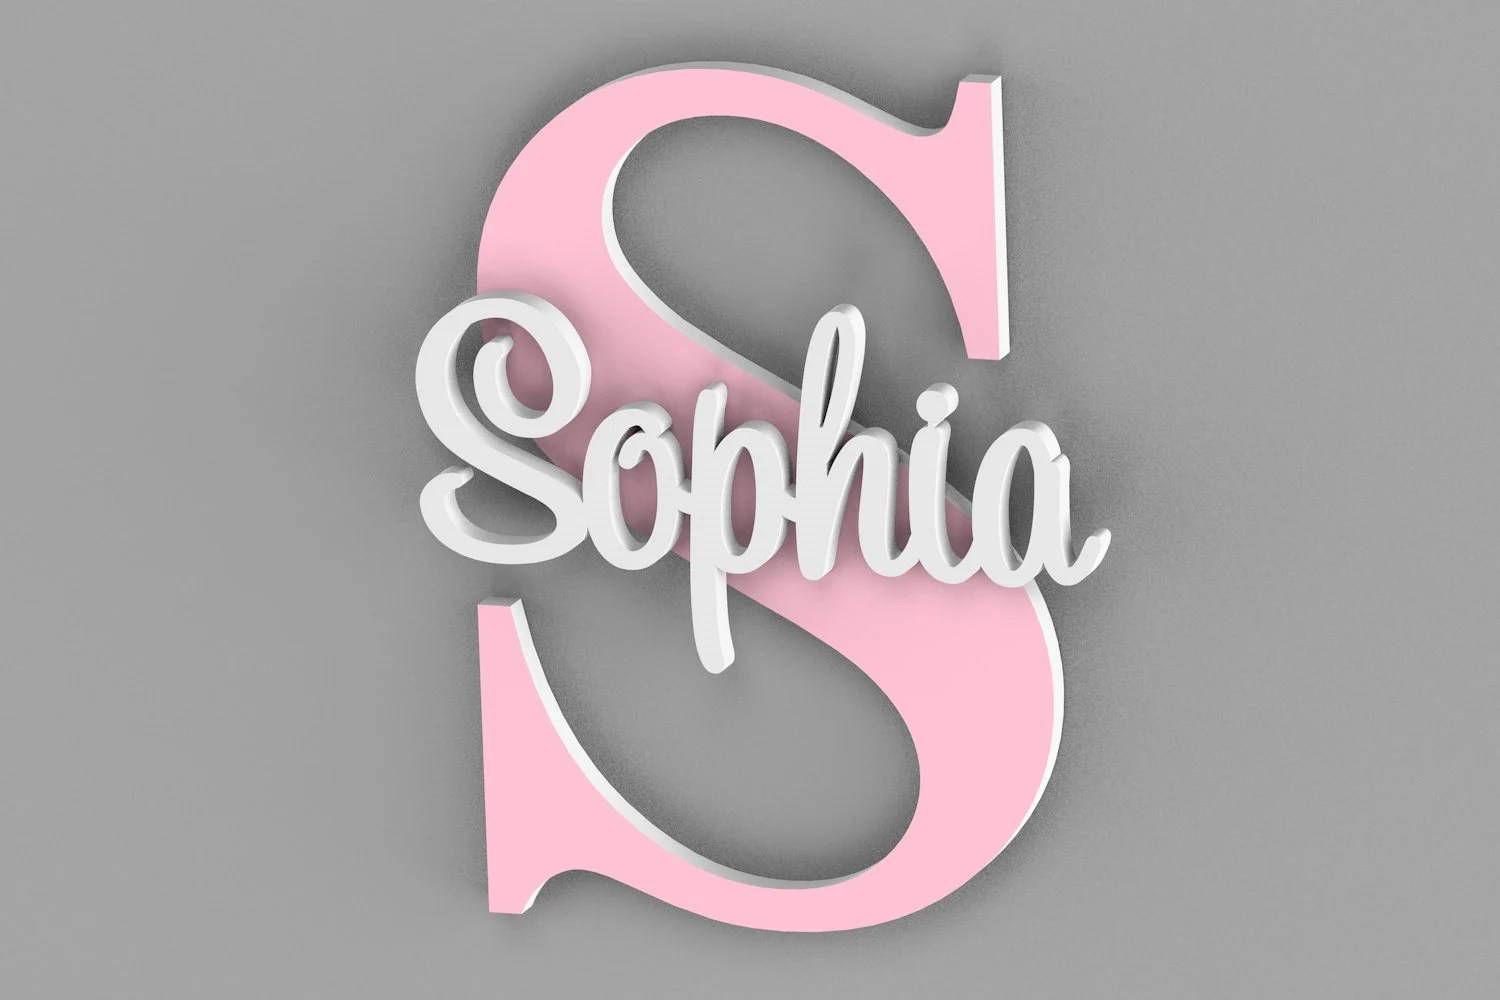 Personalized Name Sign For Kids and Babies Door Sign Name image 2